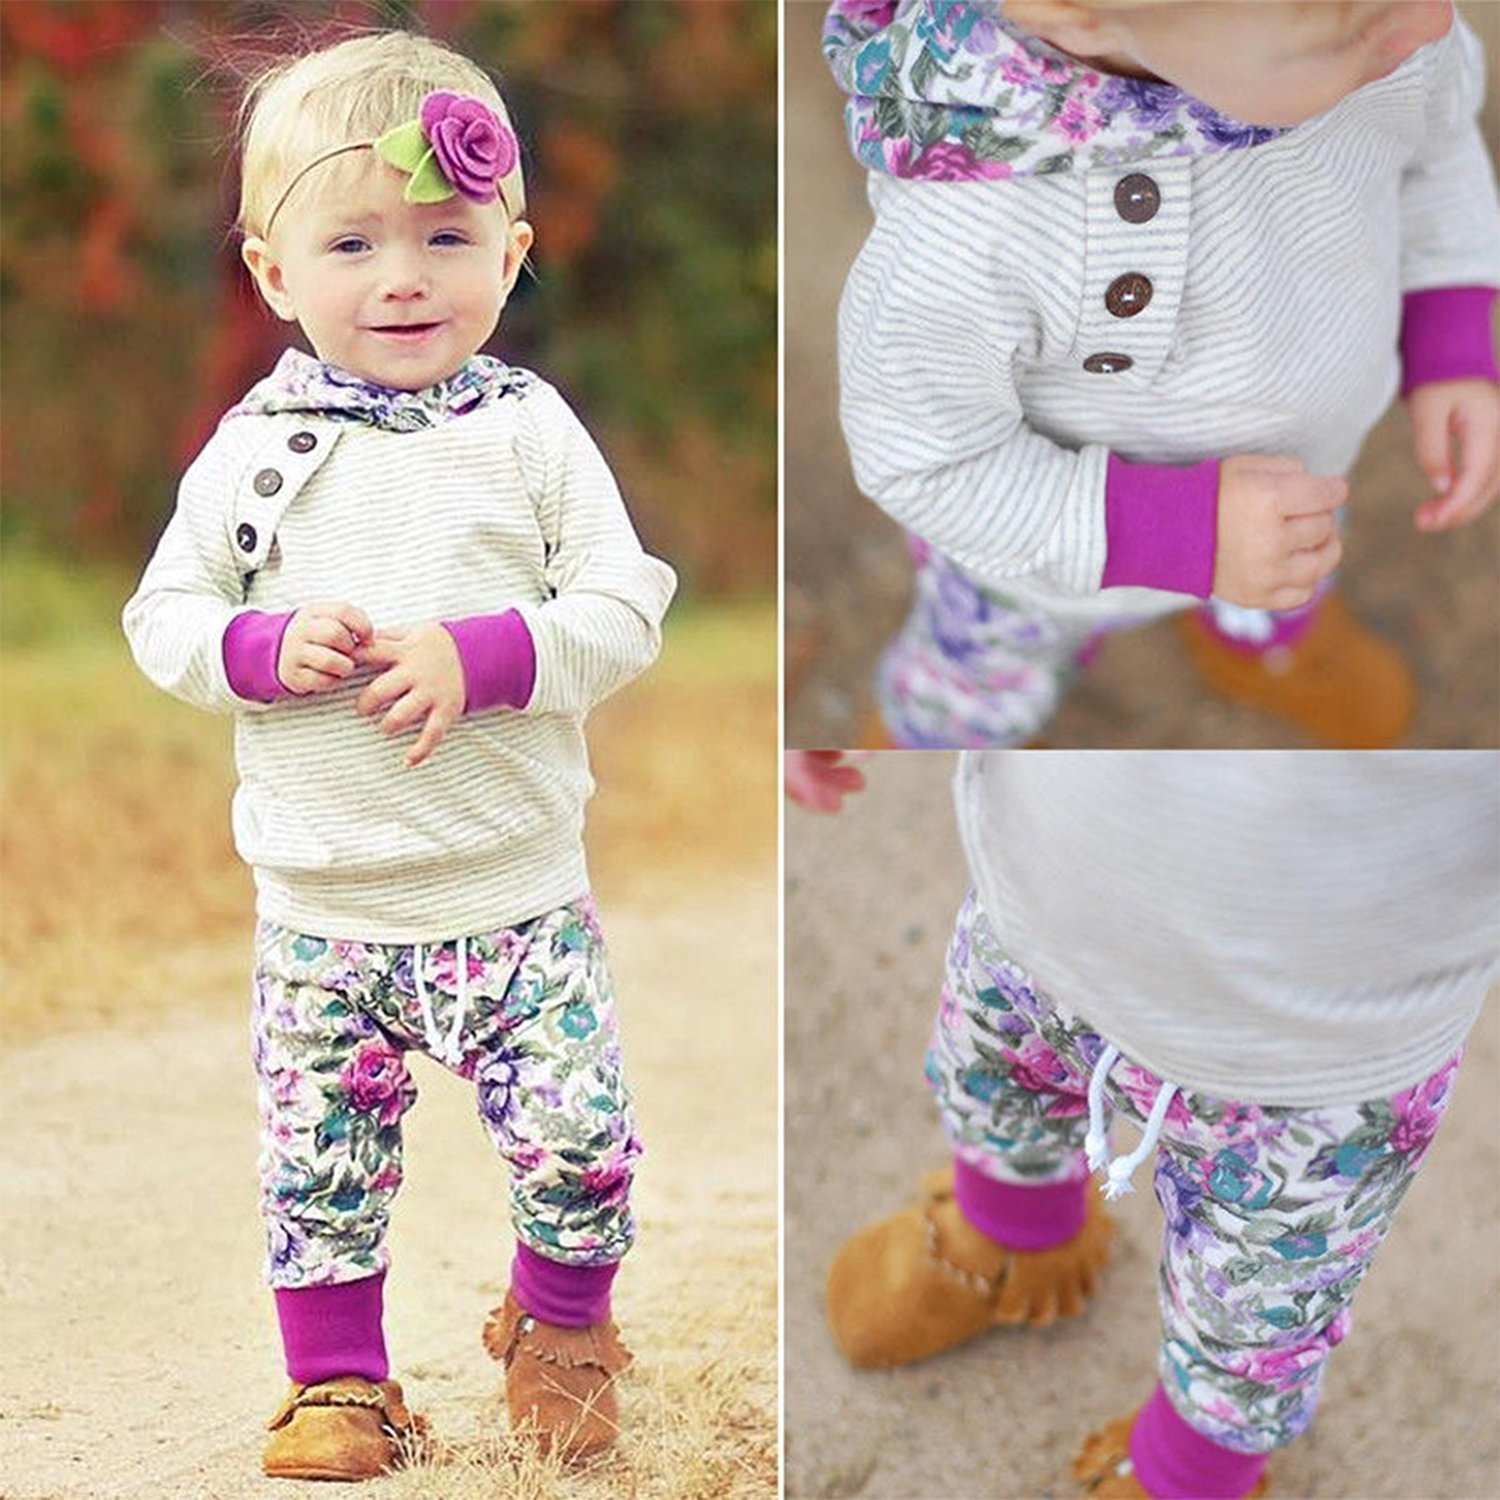 Baby Girls Long Sleeve Flowers Hoodie Tops and Pants Outfit with Kangaroo Pocket Headband (0-6 Months) by Oklady (Image #7)